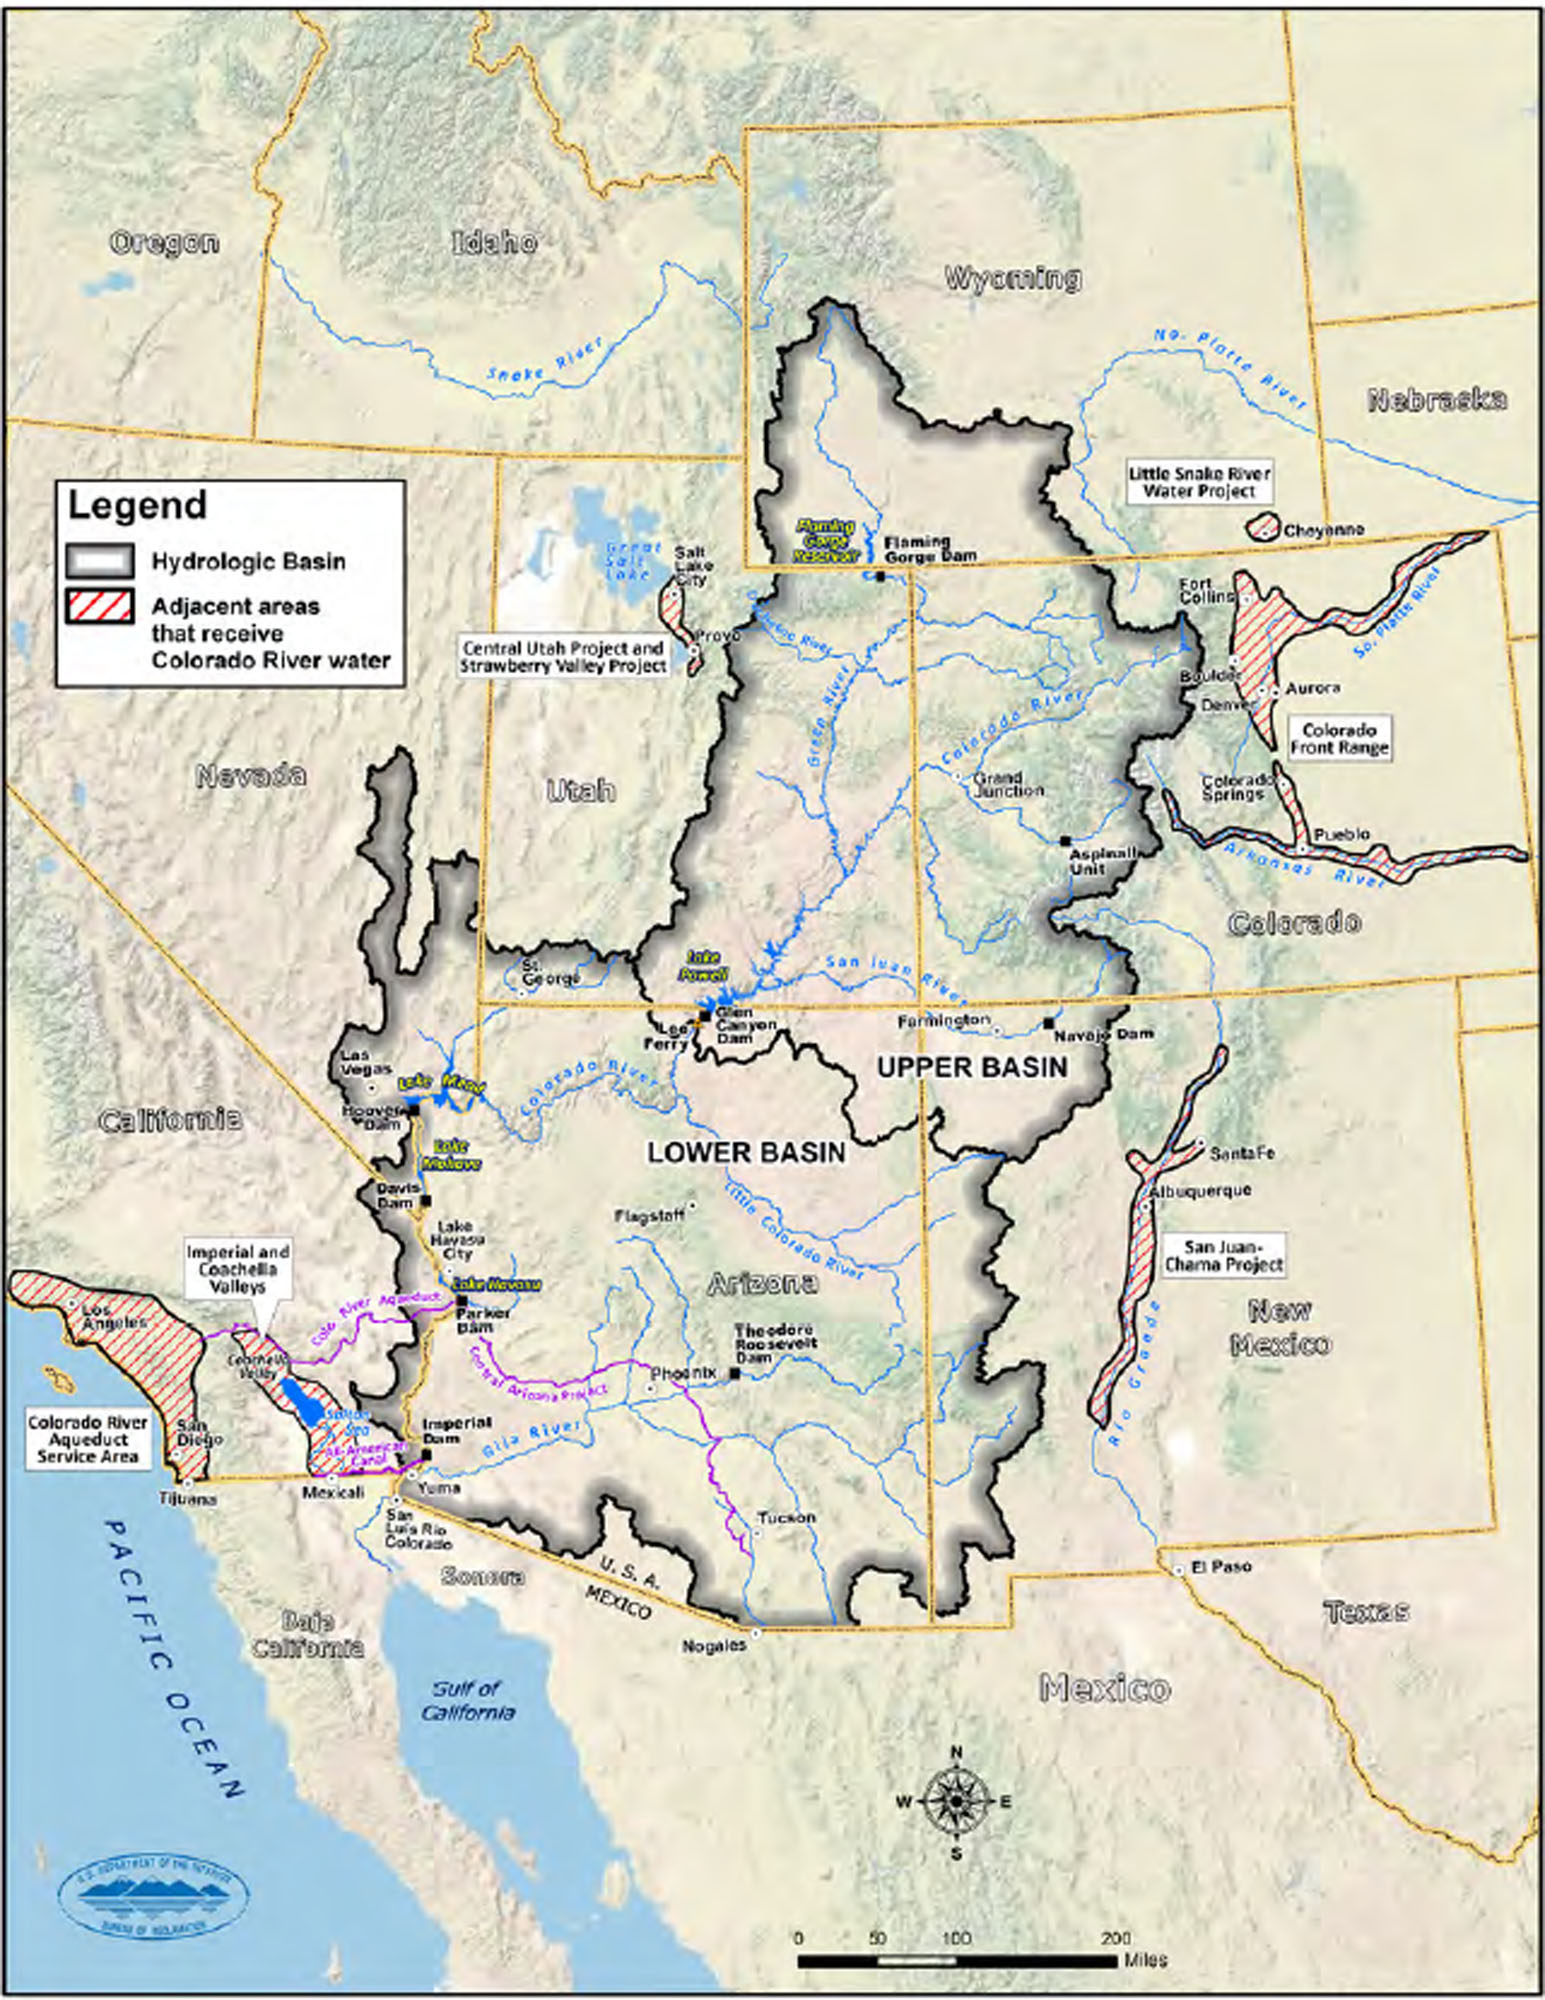 Demands On Colorado Again Make It Nations Mostendangered River - Map of colorado river in texas